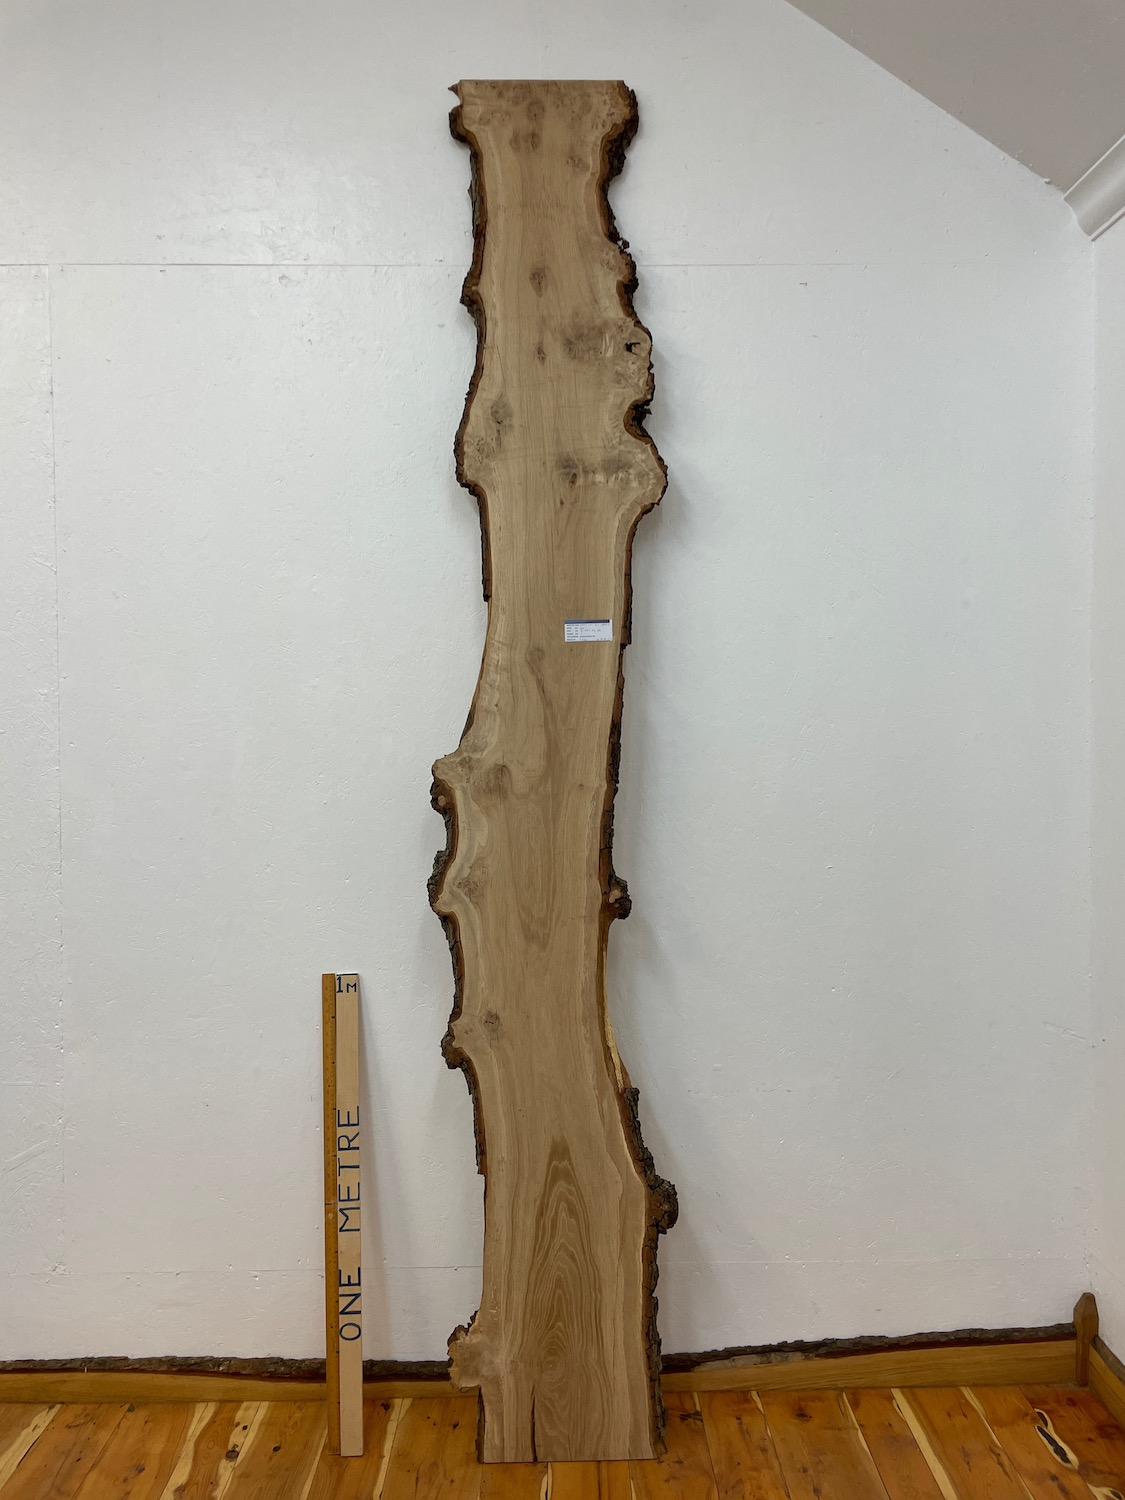 BURRY OAK Natural Waney Edge Slab Wood Timber Board 1559A-3 Thickness 3cm Kiln Dried Planed & Thicknessed Seasoned Hardwood Wildwood